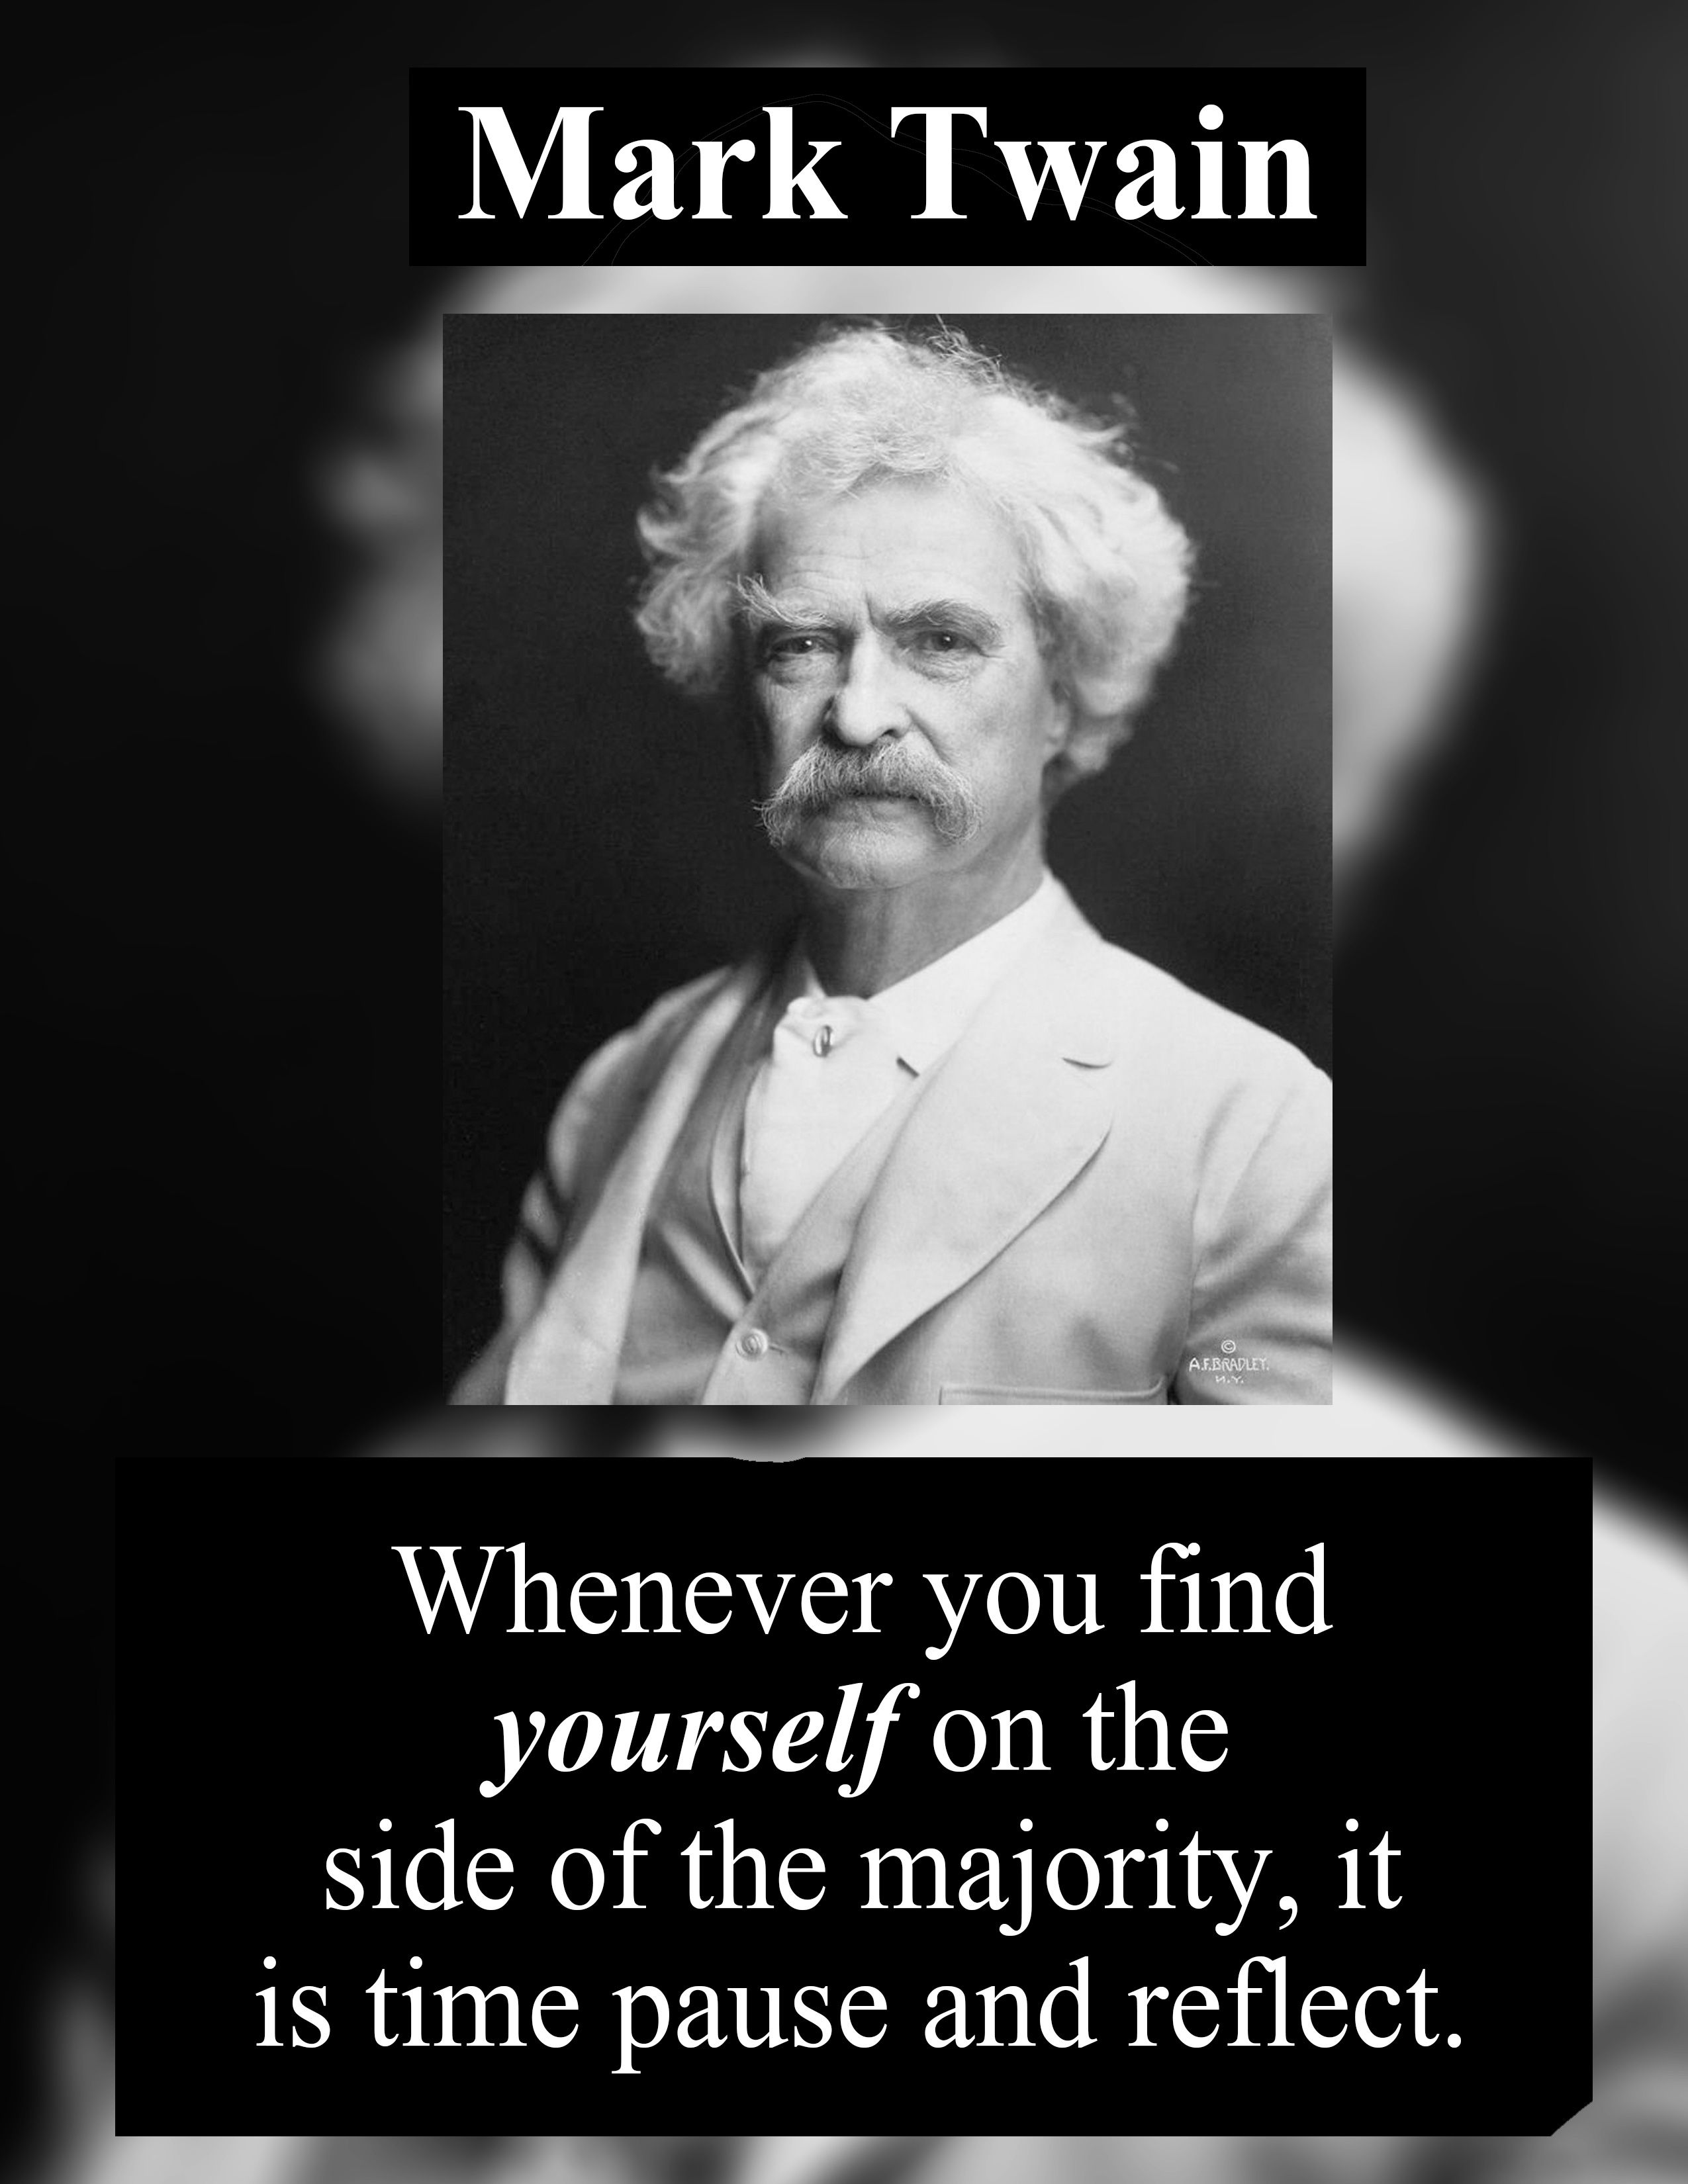 Mark Twain Quotes. Happiness, Friends, Life, & Books. Mark Twain Funny Inspirational Short Quotes